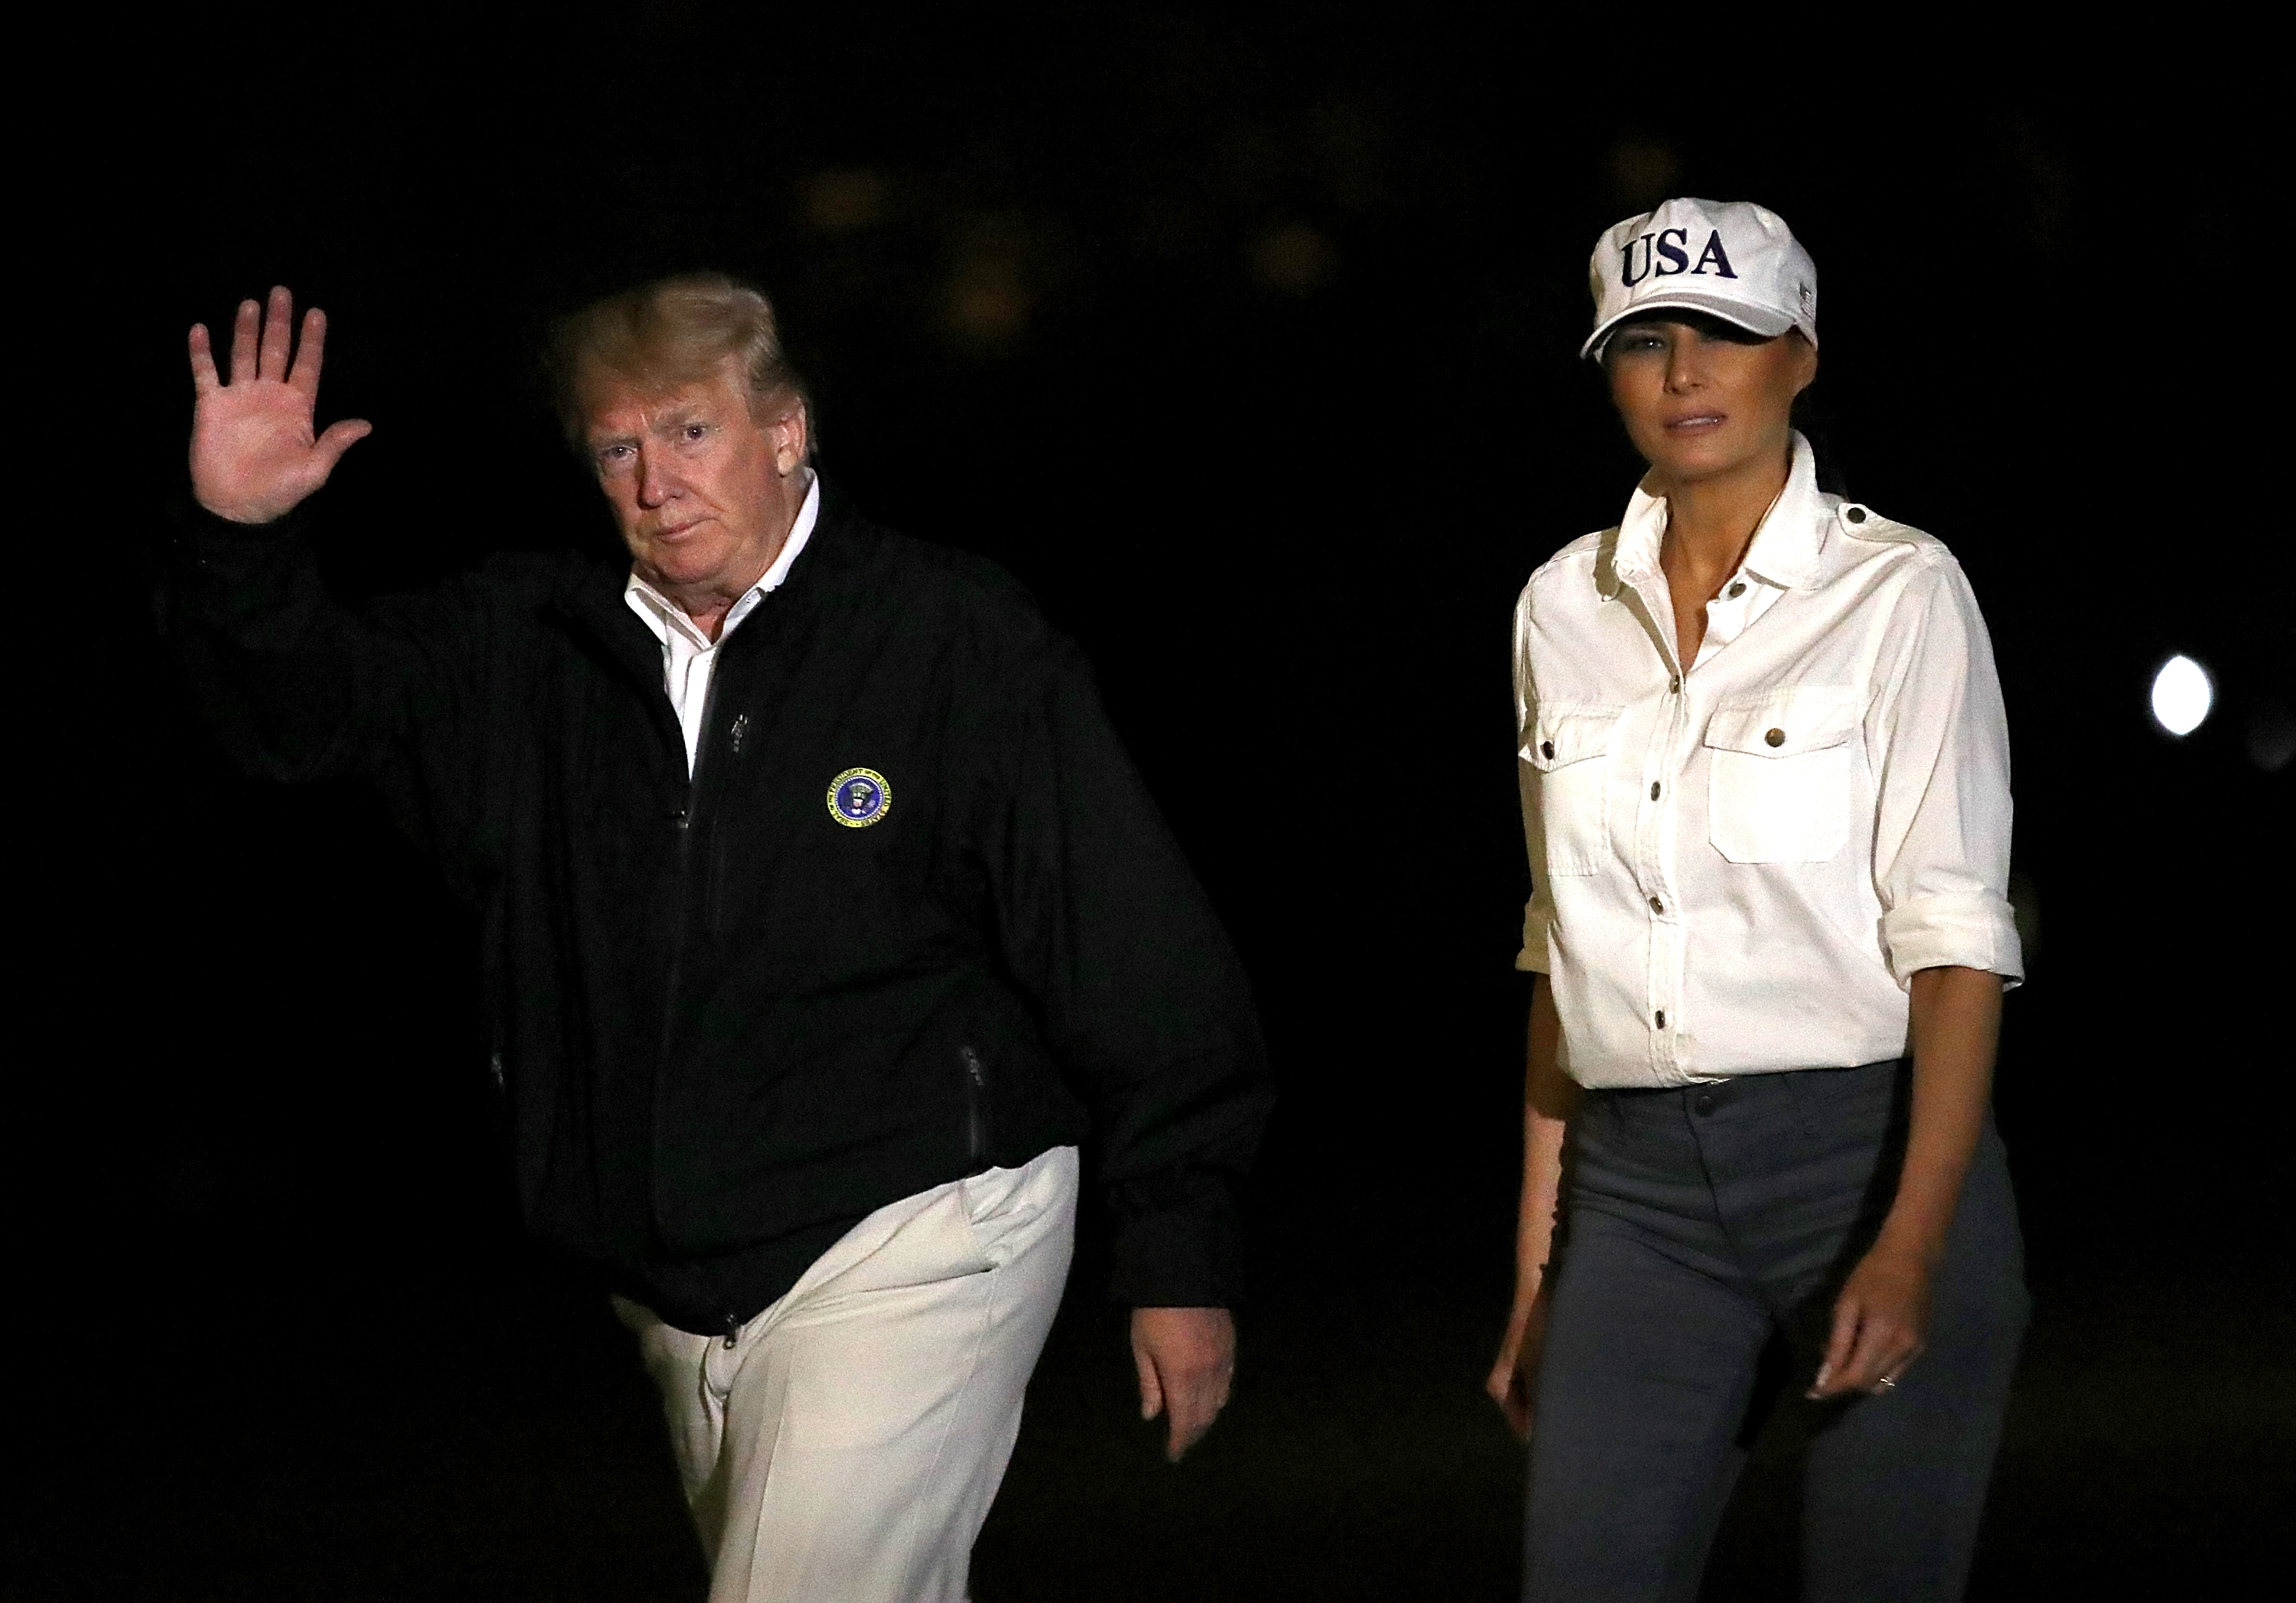 WASHINGTON, DC - OCTOBER 15: U.S. President Donald Trump (L) and first lady Melania Trump (R) return to the White House from Florida and Georgia on October 15, 2018 in Washington, DC. U.S. President Donald Trump visited areas in Florida and Georgia that were affected by Hurricane Michael. (Photo by Justin Sullivan/Getty Images)